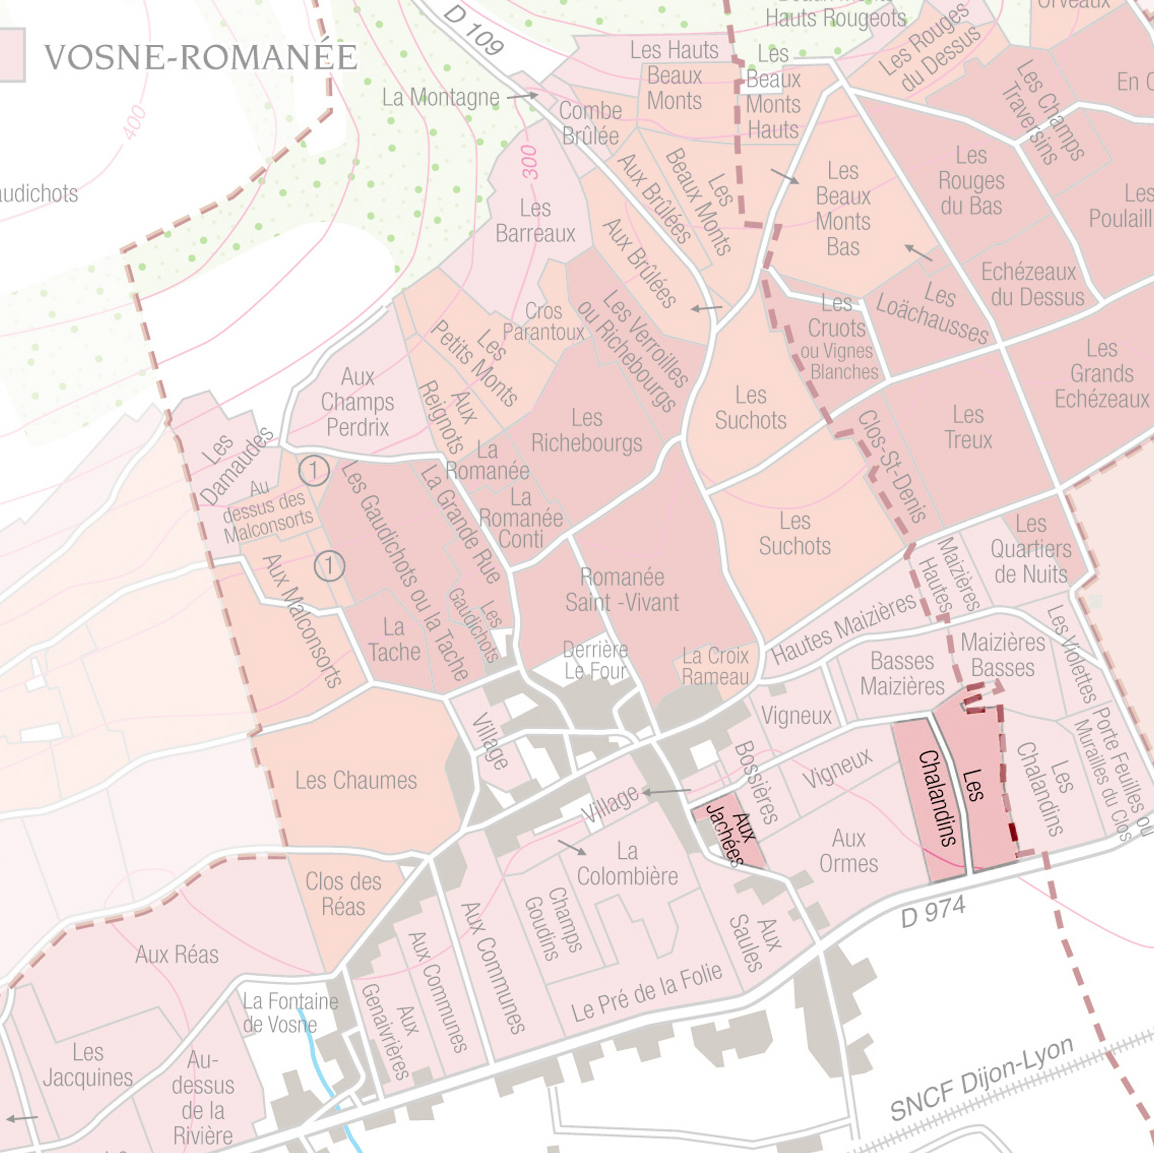 Vosne-Romanée - This cuvée of Vosne-Romanée village, comes from a blending of two plots situated in